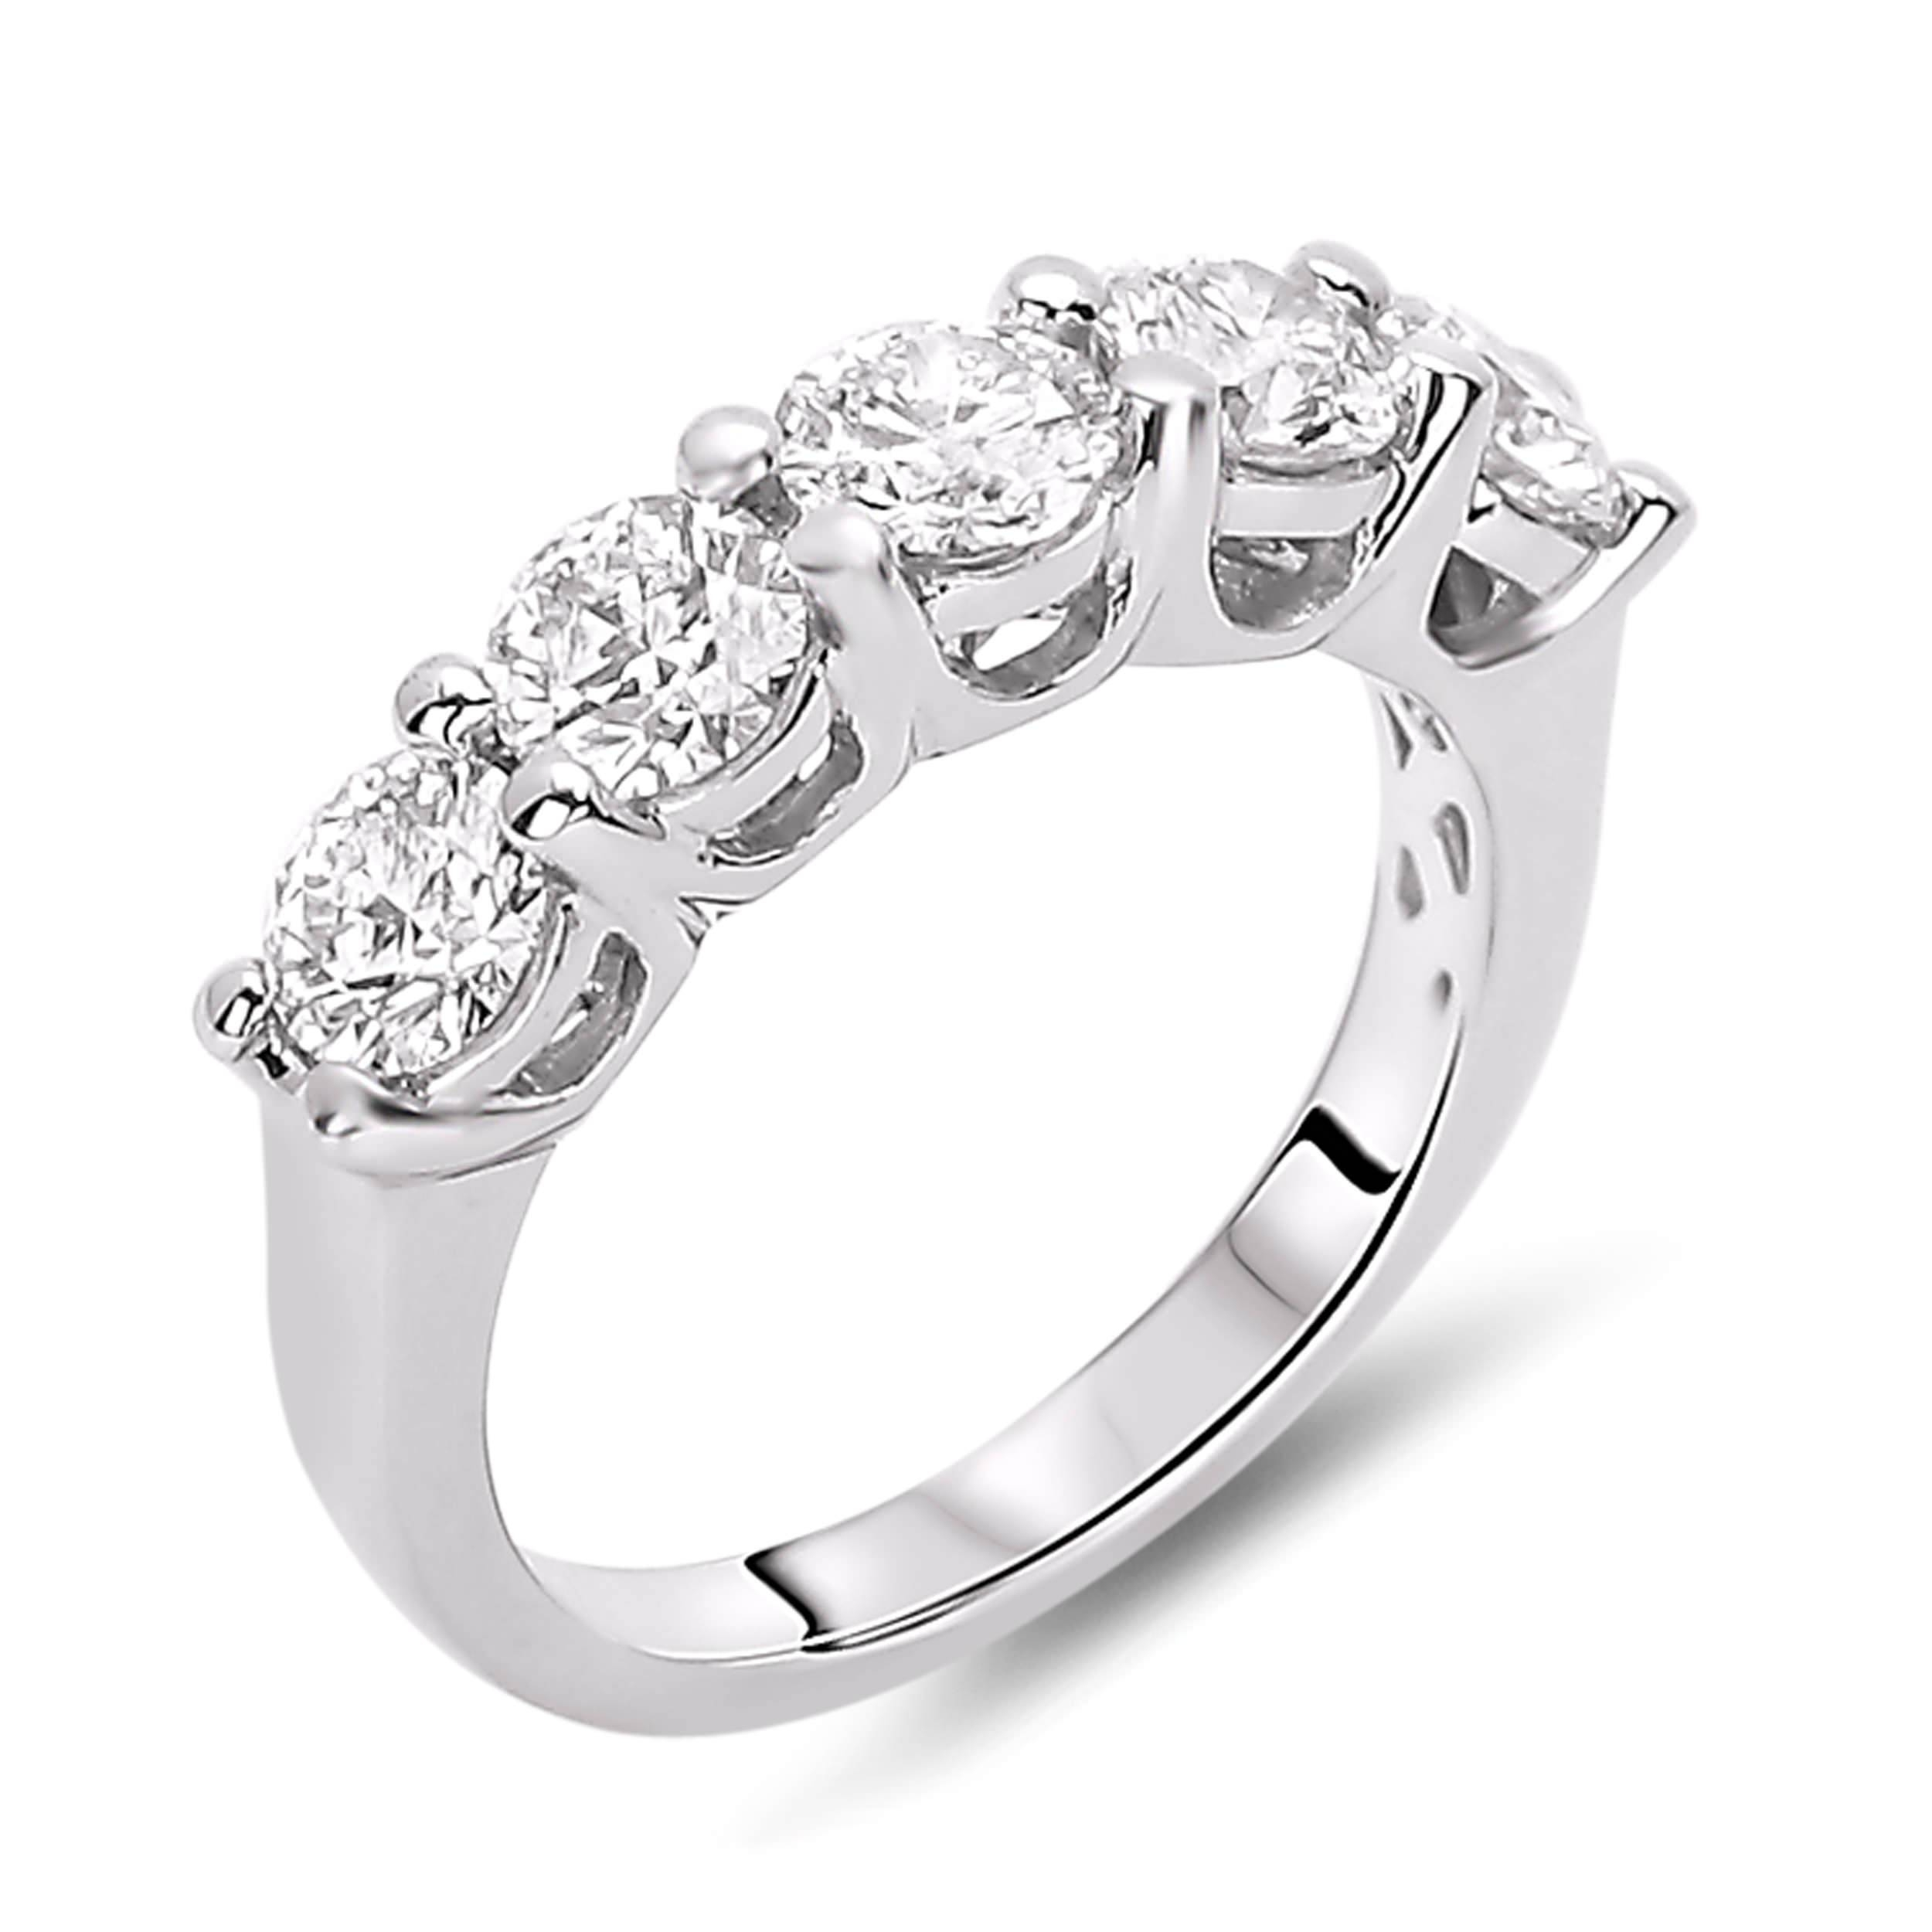 Wedding Rings : Art Deco Anniversary Band 3 Carat Solitaire With Recent 5 Stone Anniversary Rings (View 13 of 25)